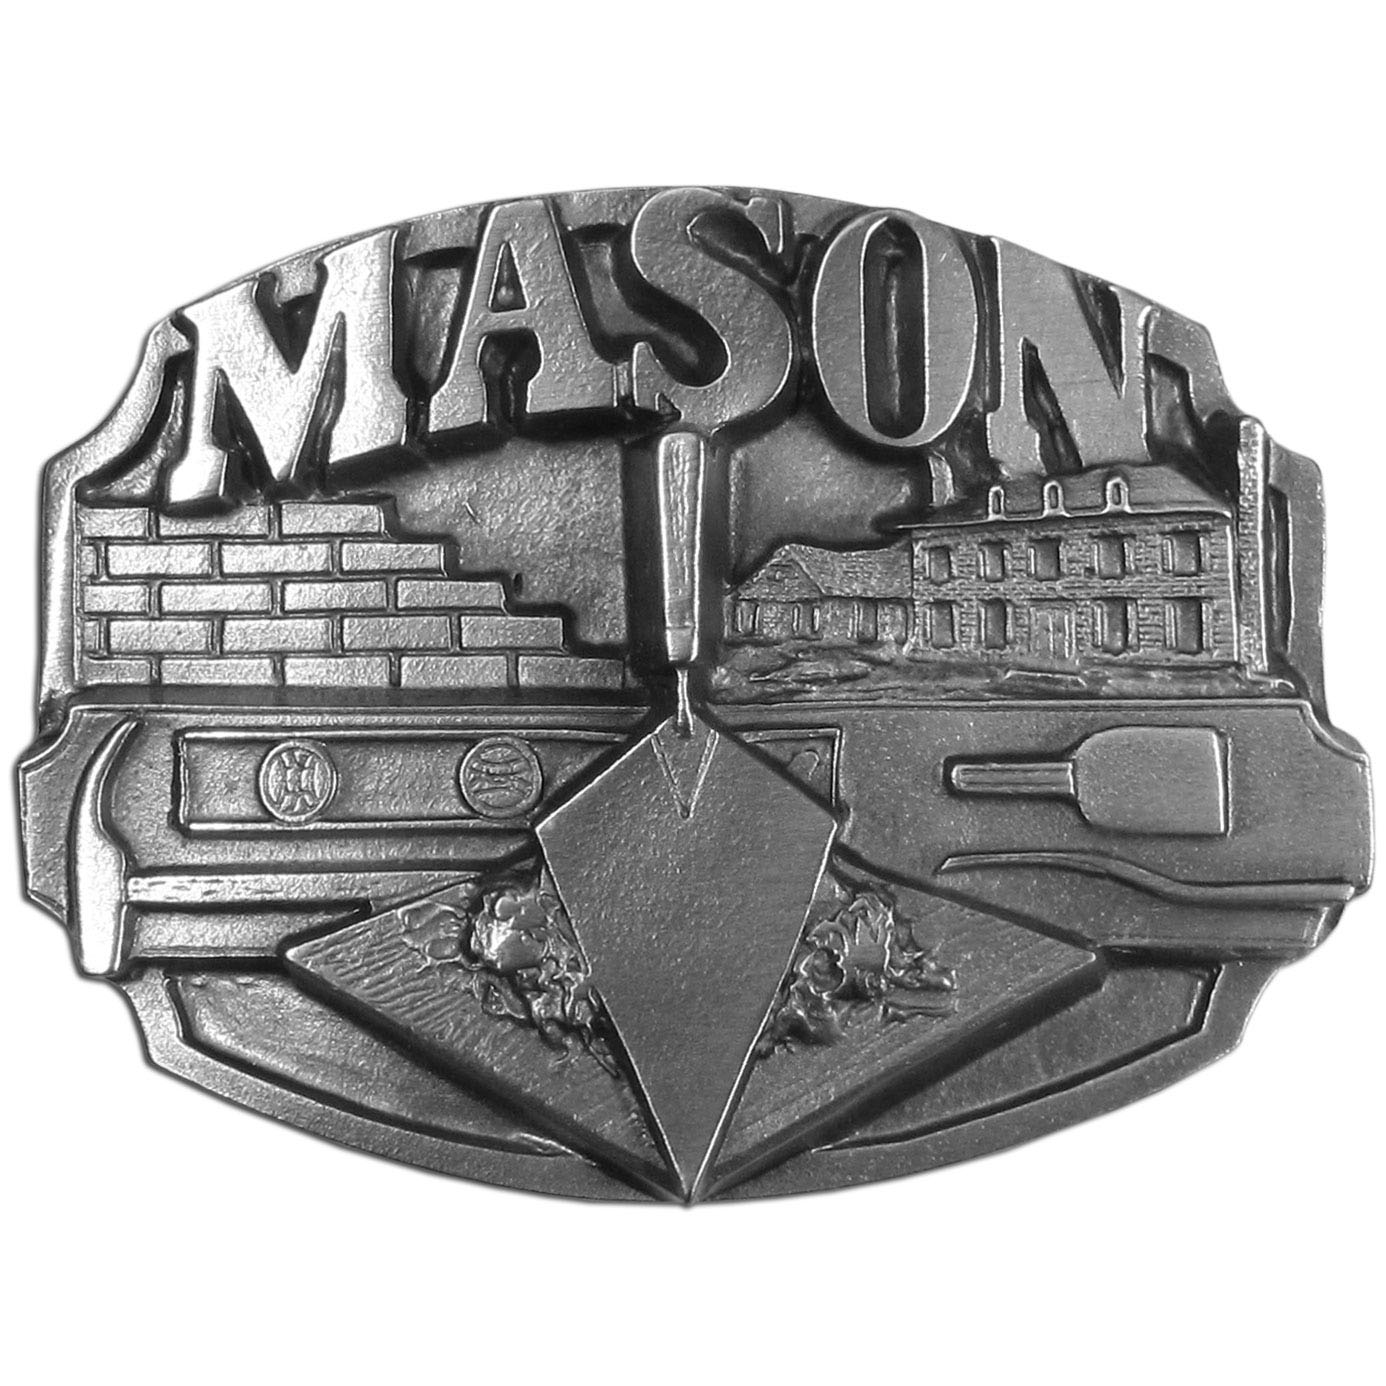 "Mason Antiqued Belt Buckle - ""This belt buckle celebrates the mason.  """"Mason"""" is written in bold across the top with a half built row of bricks, a brick house, a trowel and mud, a balance and a hammer.  On the back are the words, """"This buckle is dedicated to the mason whose ancient craft has built the foundation of civilization.""""  Our fully cast metal belt buckles have exceptional detail and fine craftmanship with an antiqued finish. Standard bale fits belts up to 2"""" in width."""